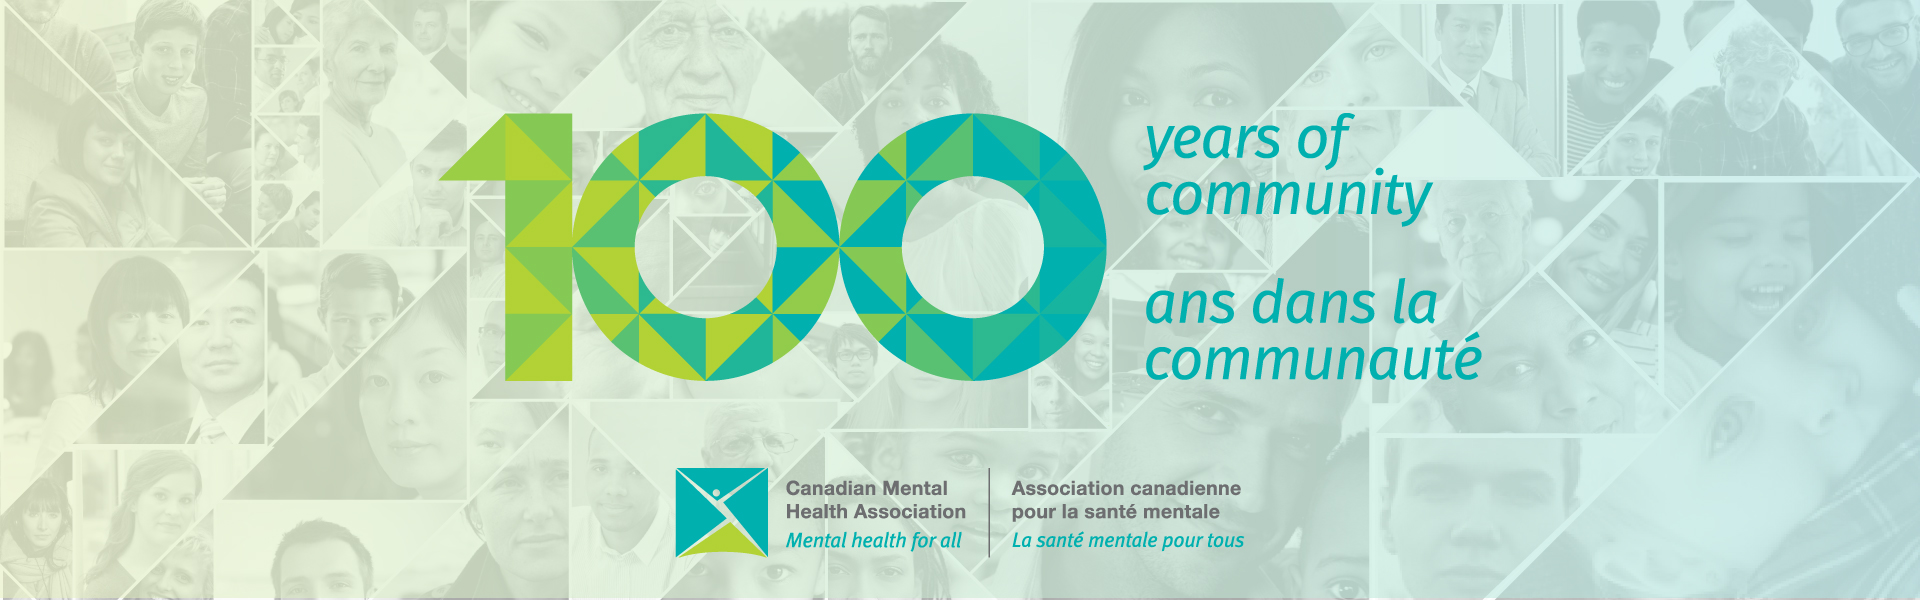 Canadian Mental Health Association 100 Year Anniversary